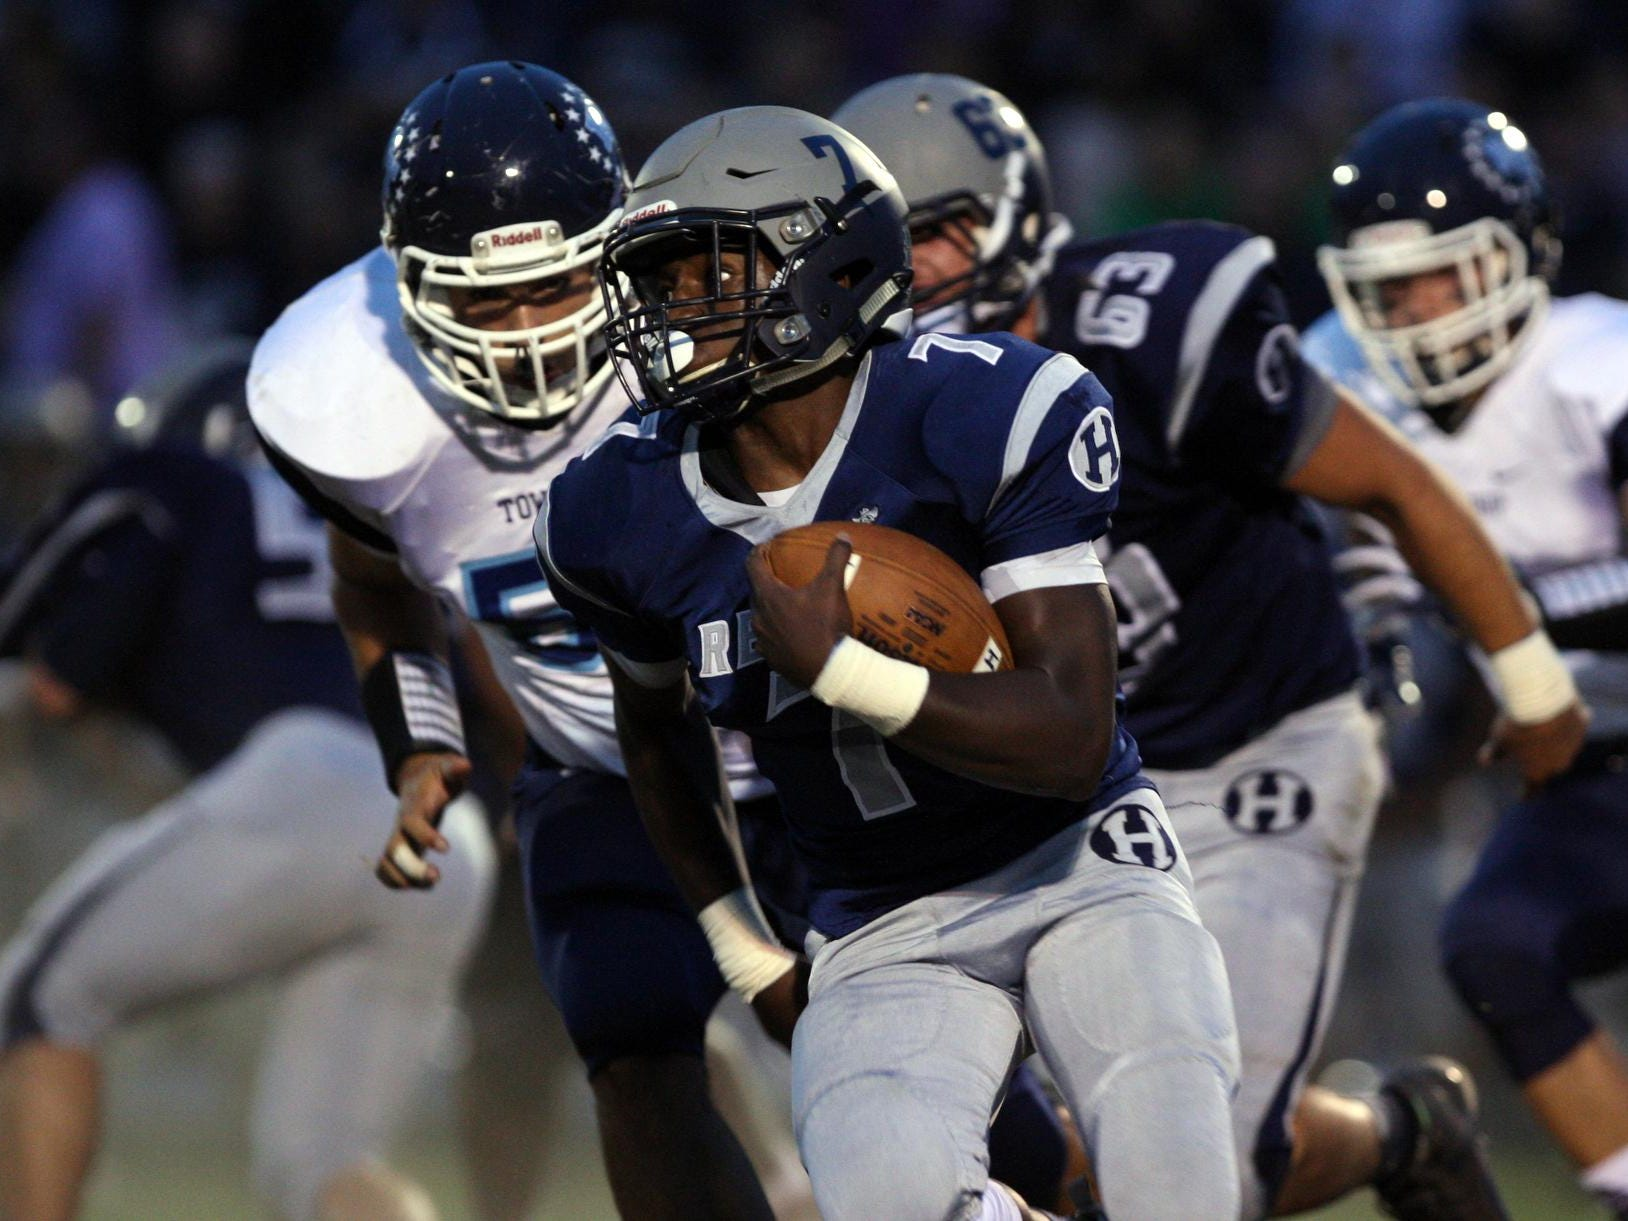 Mekai Gandy, #7 Howell, carries the ball against Freehold Township in a football game Friday, September 25, 2015, at Howell High School.